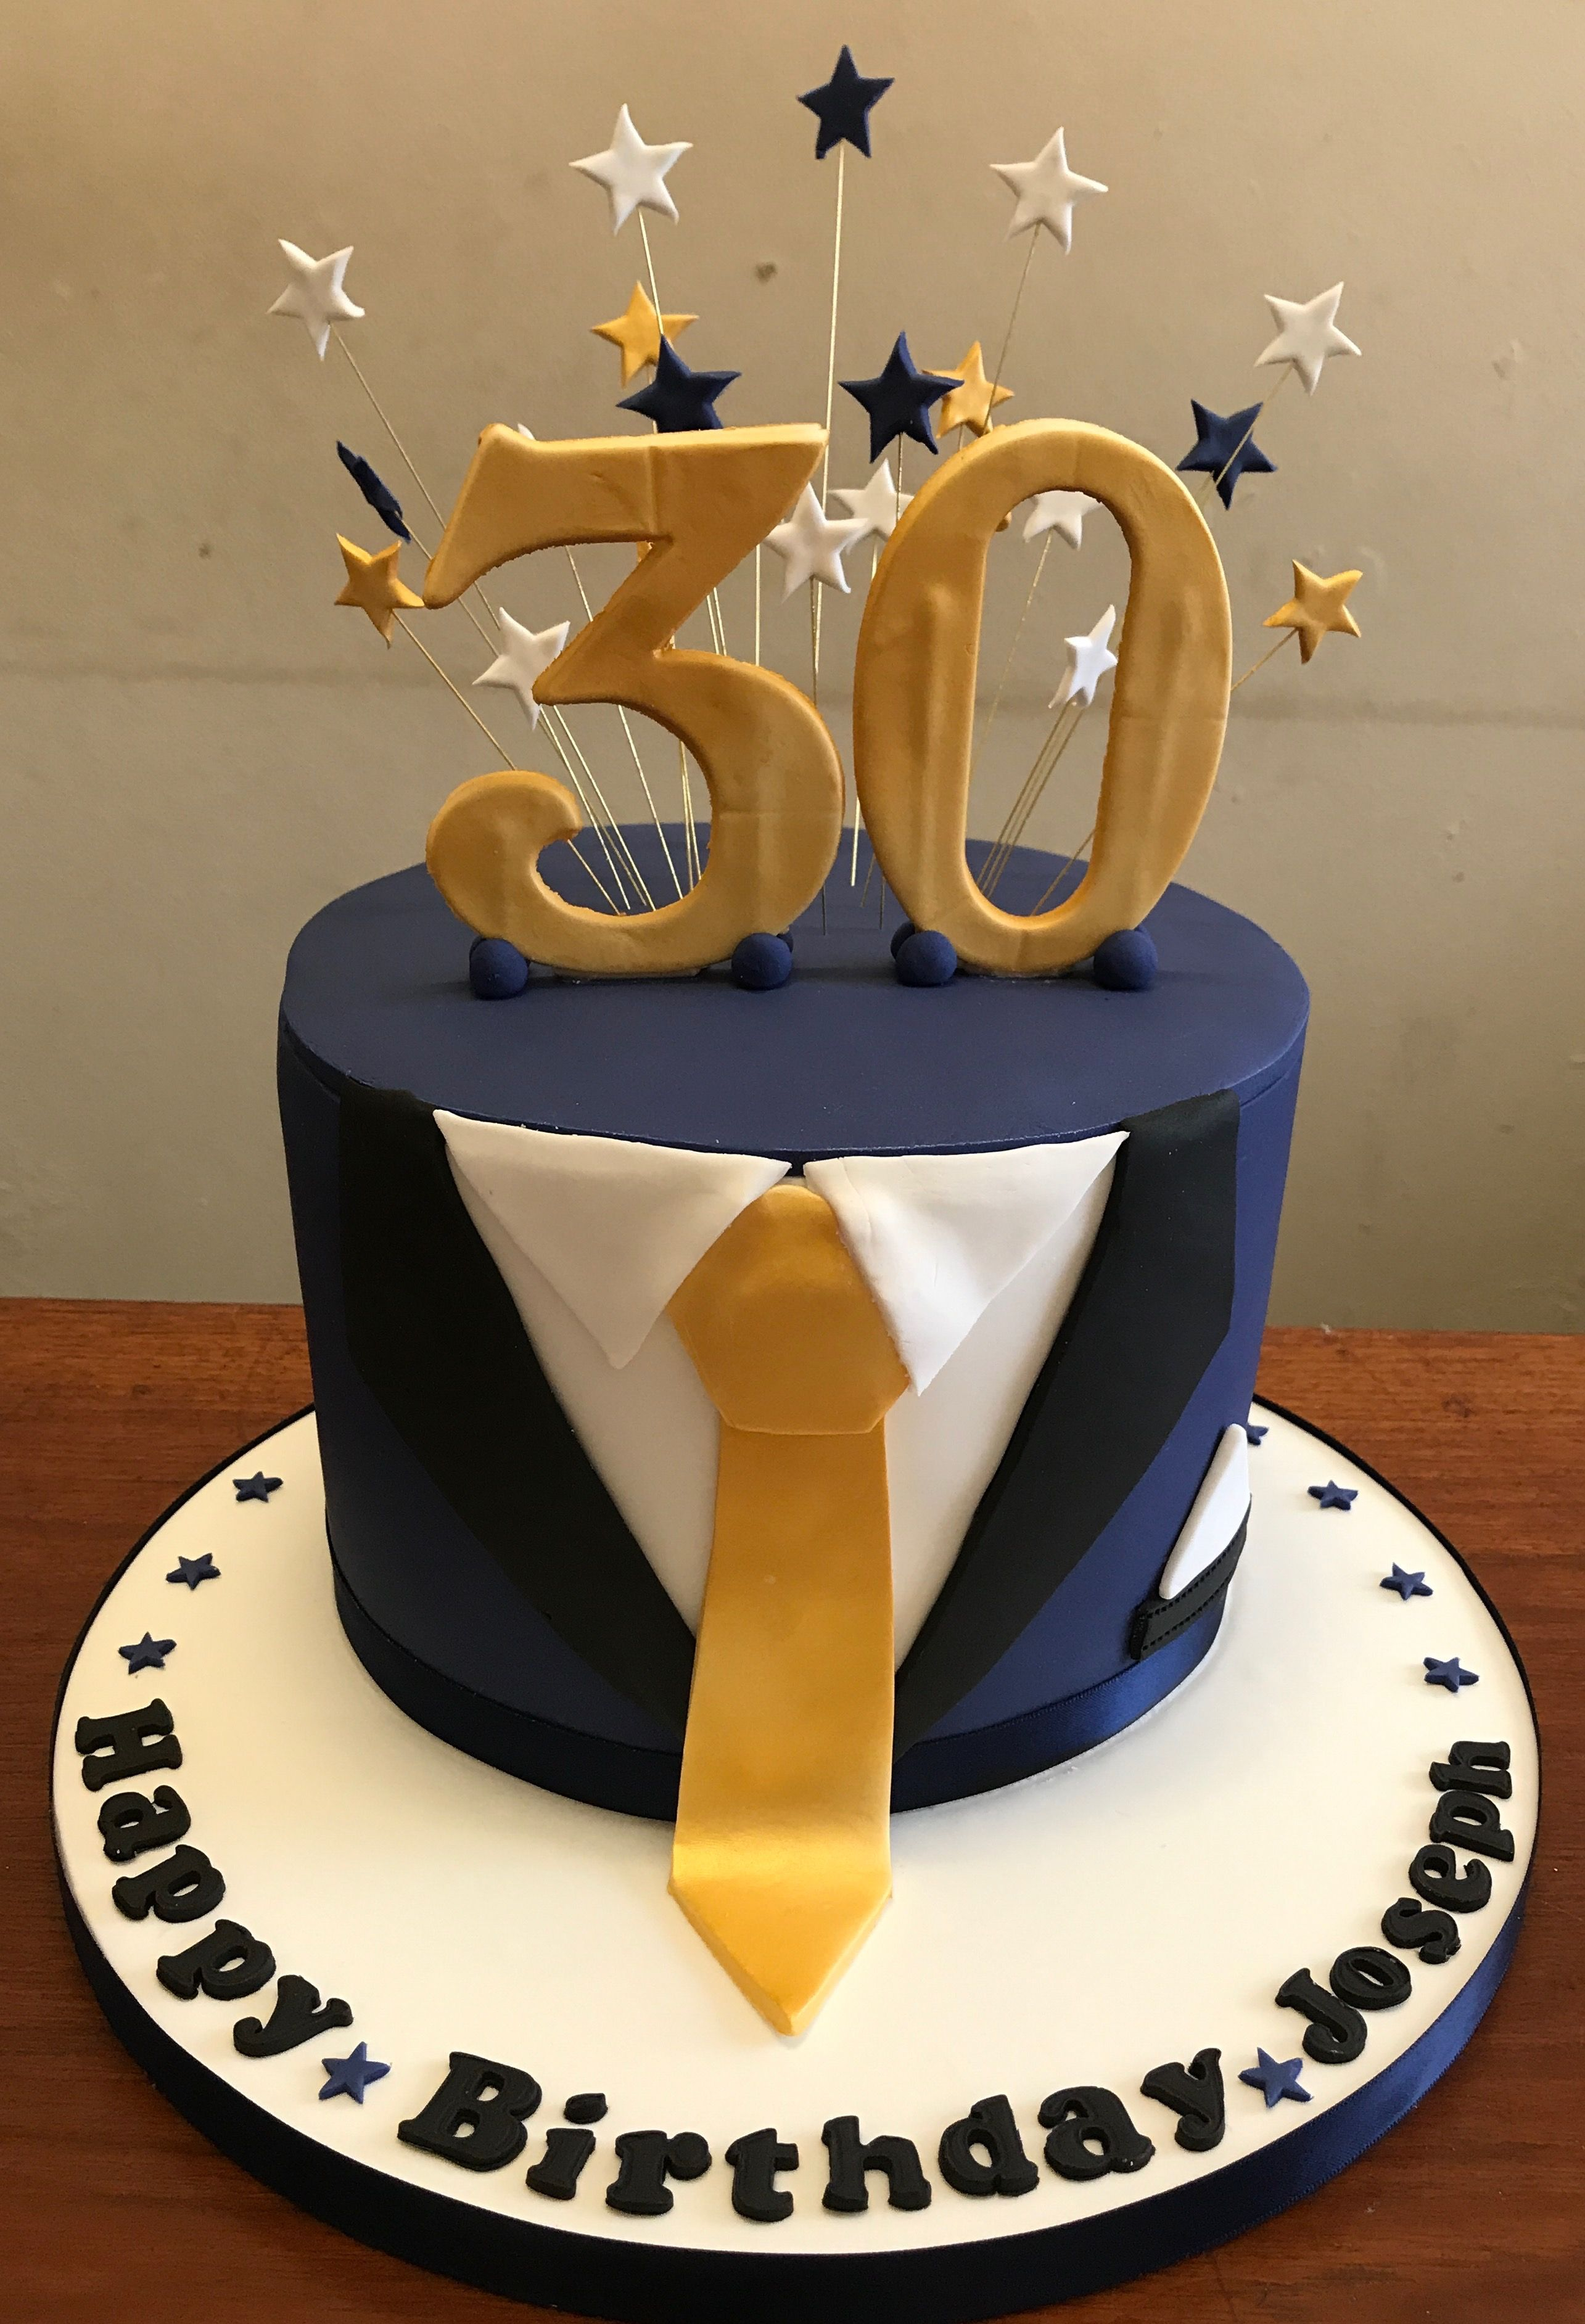 30th Birthday Cake Decorations For Him Flisol Home